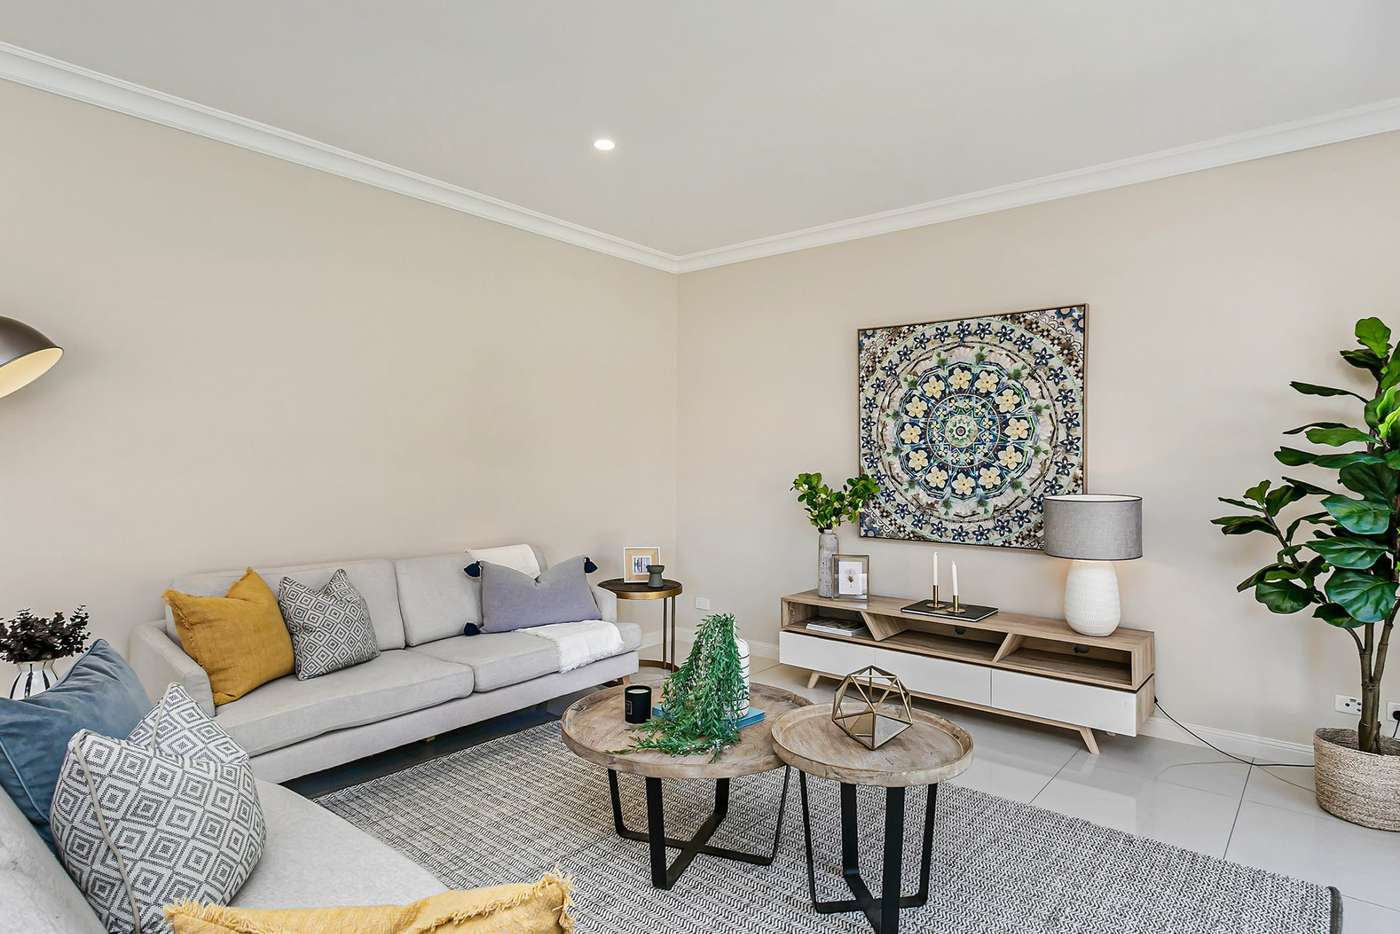 Sixth view of Homely house listing, 21 Antigua Grove, West Lakes SA 5021